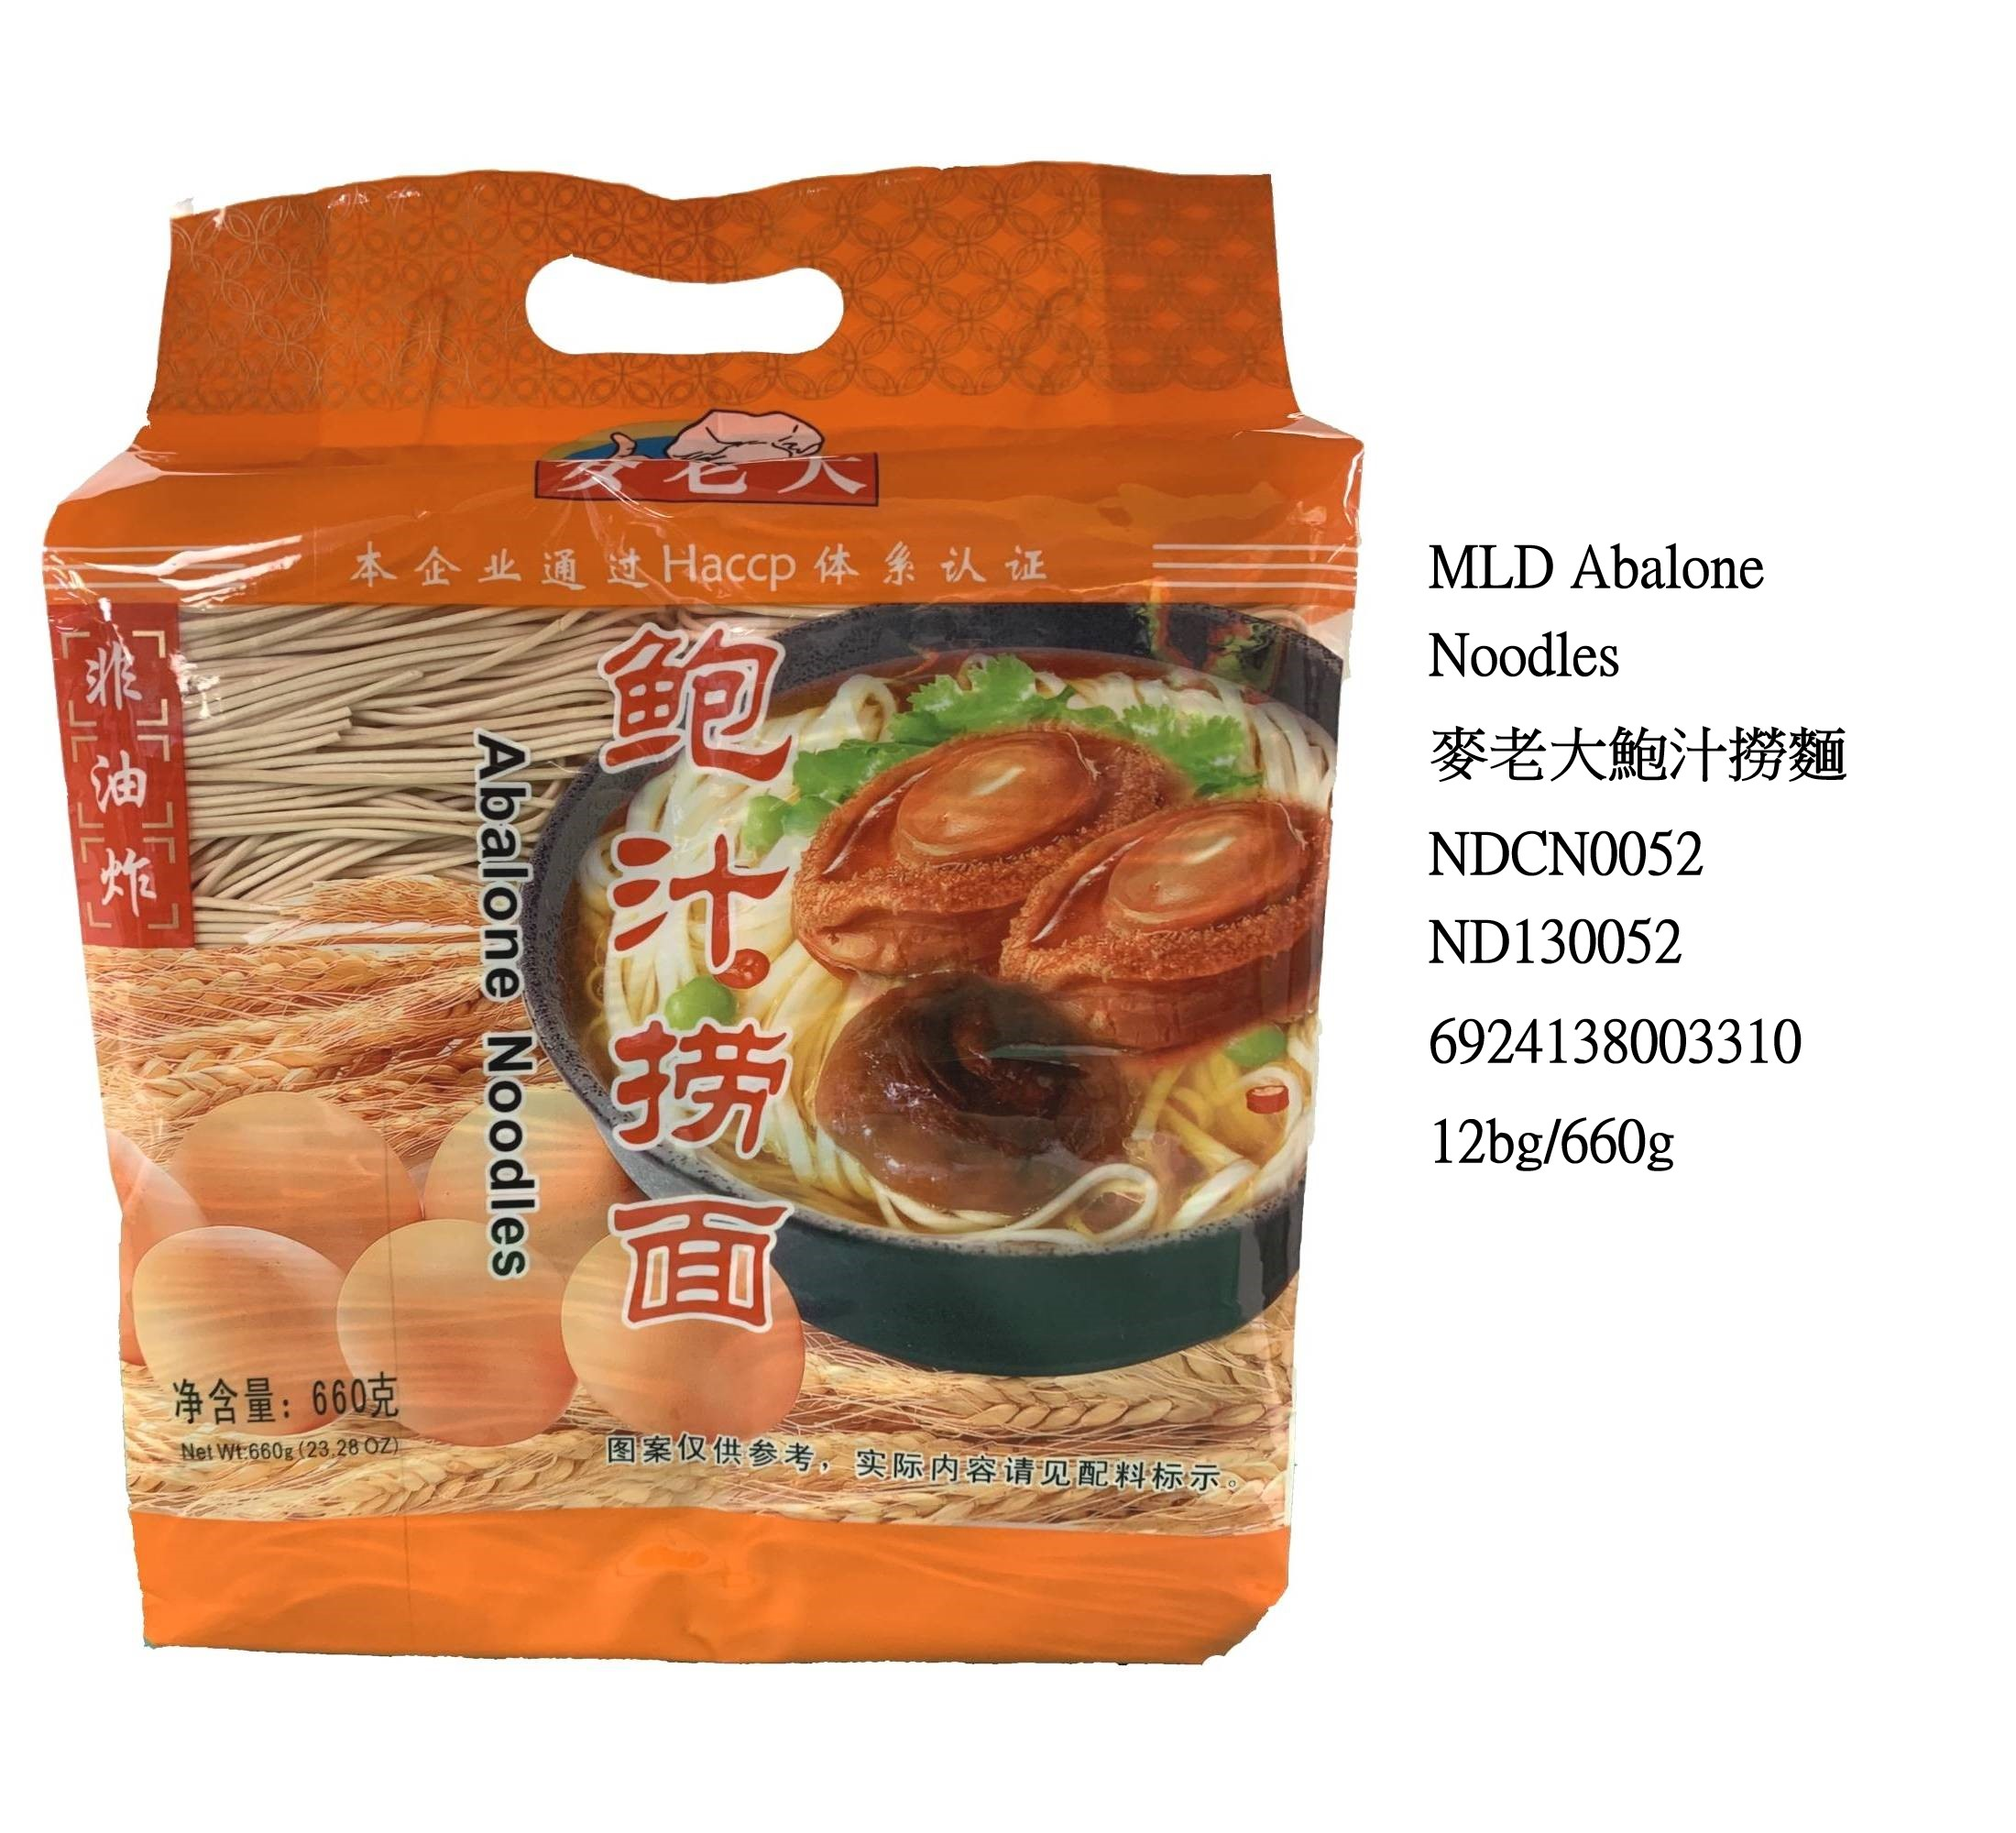 MLD ABALONE NOODLES ND130052